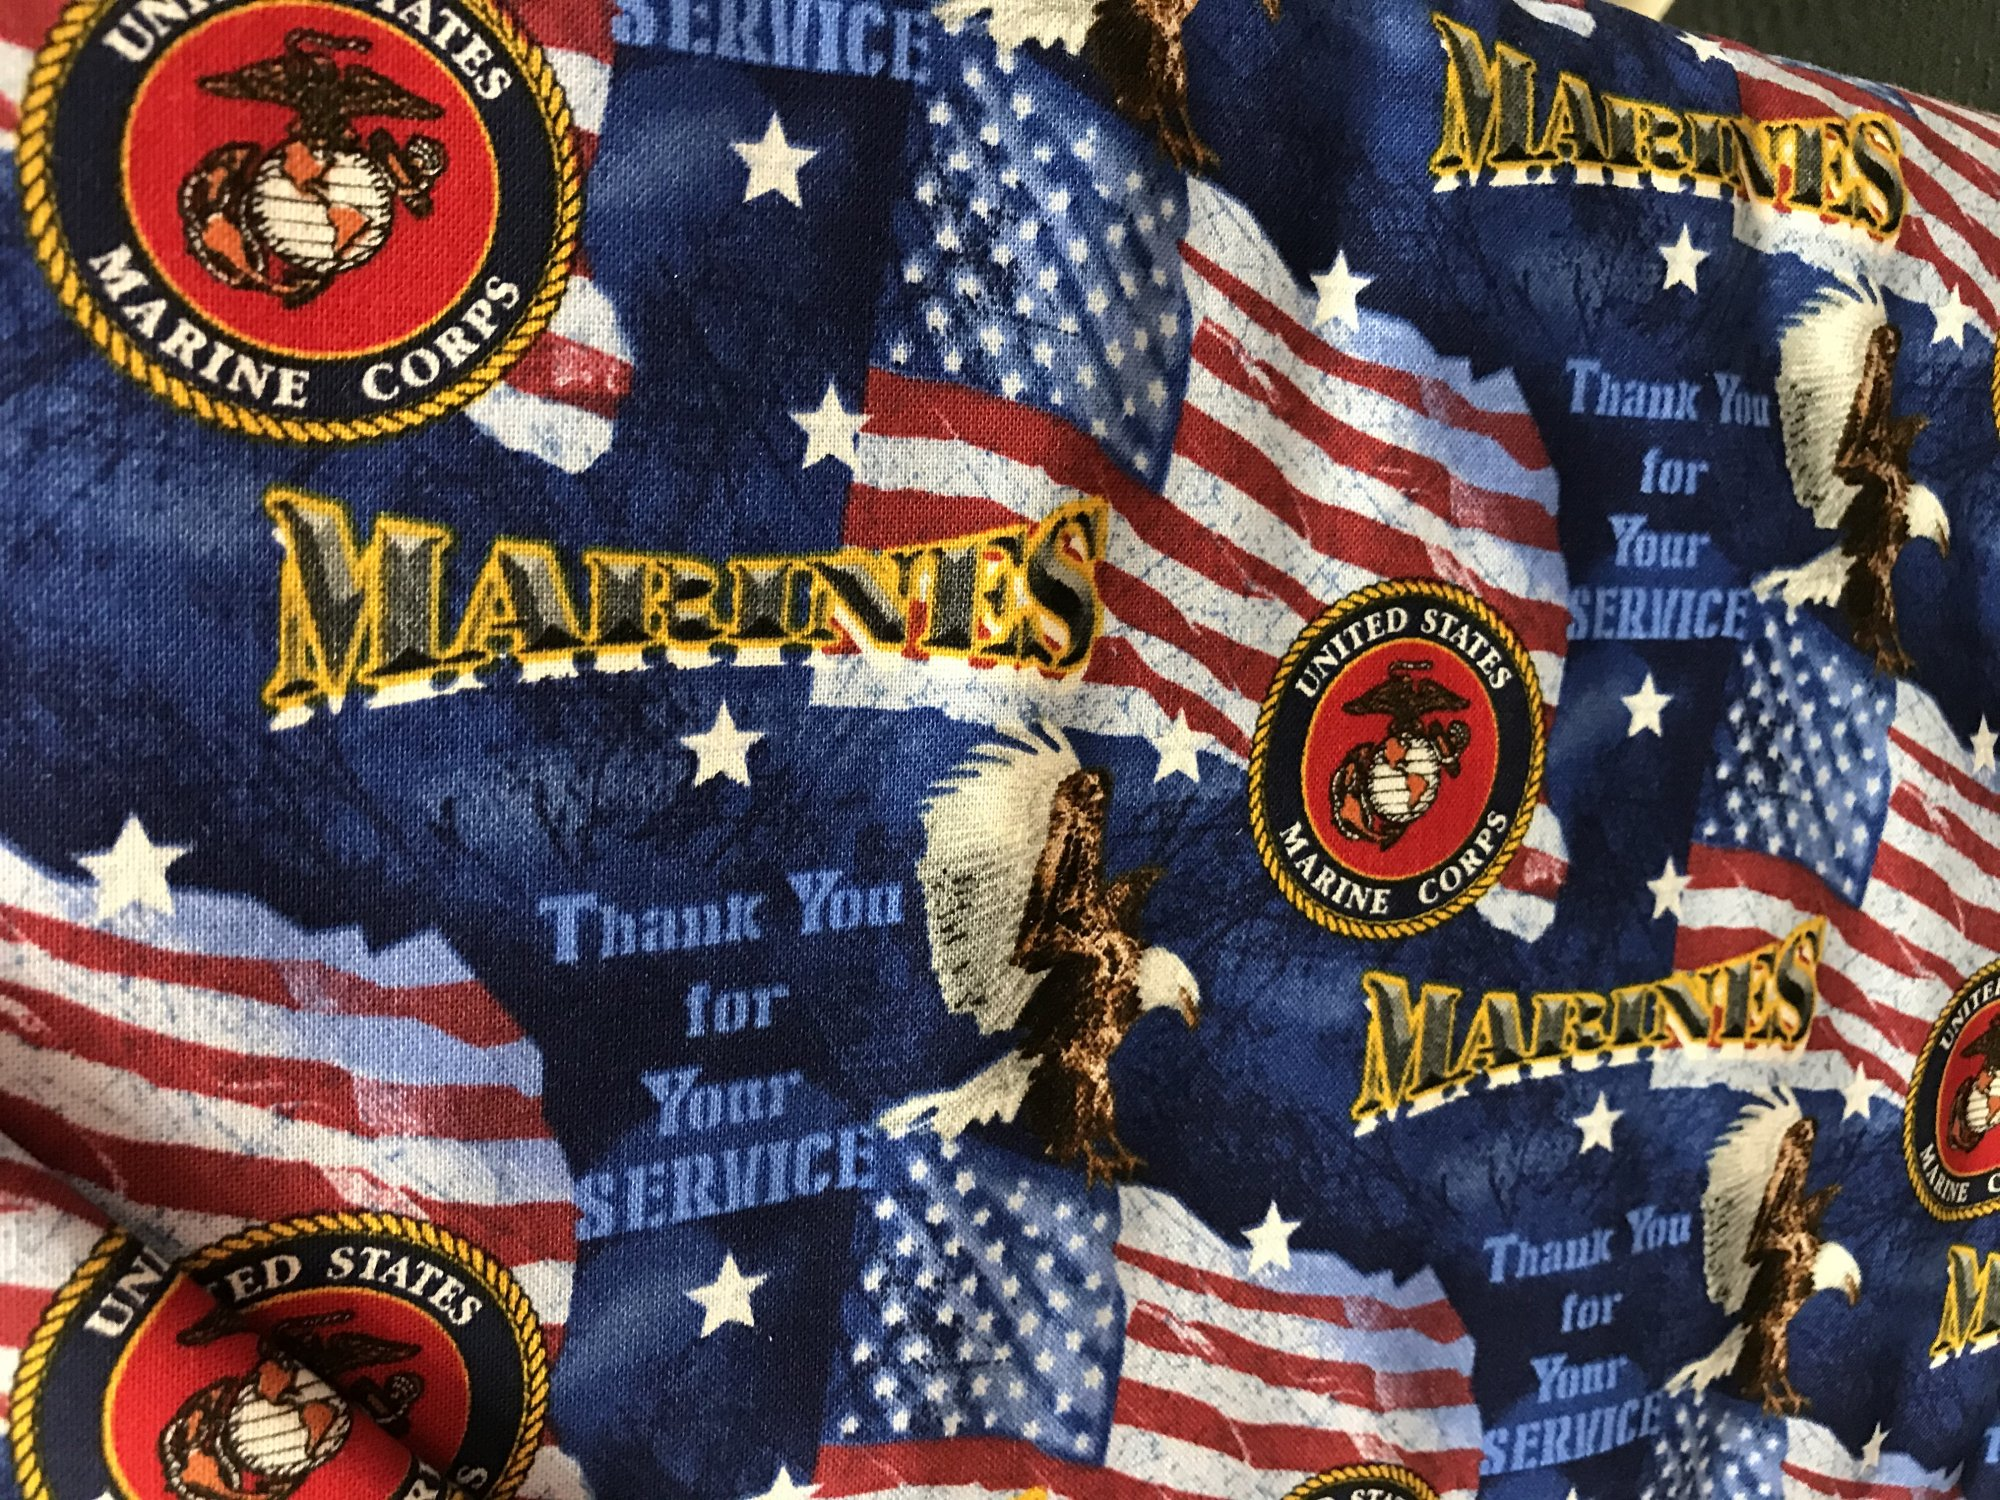 MILITARY COTTON FLAGS MARINES 1253M